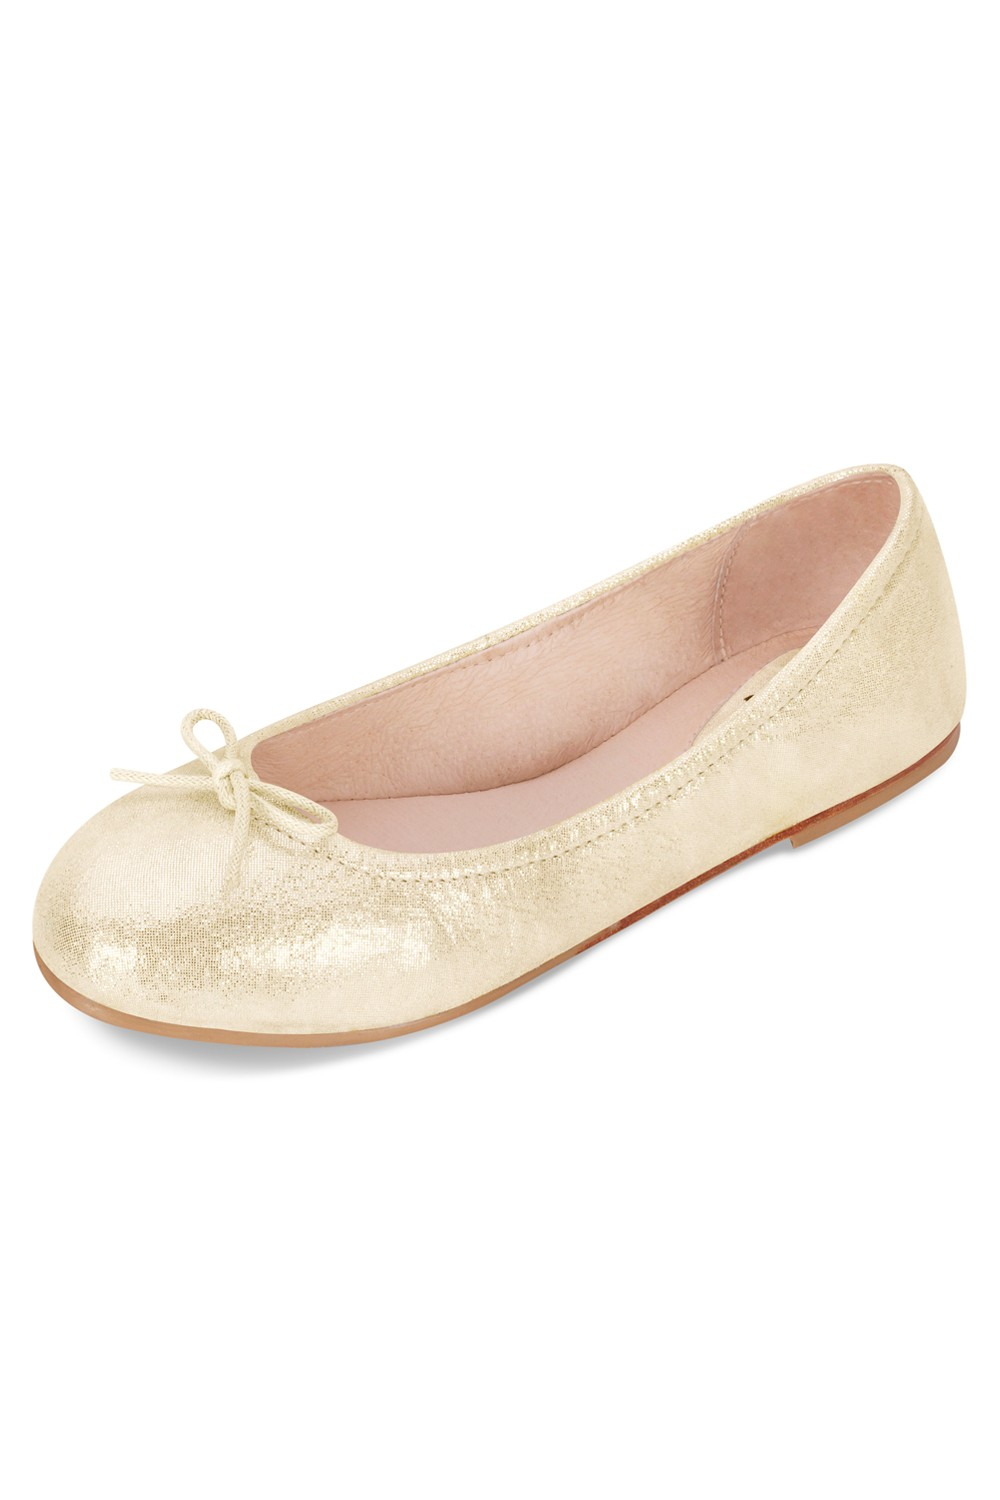 Girls Argento Sirenetta Ballet Flat Shoes Girls Fashion Shoes